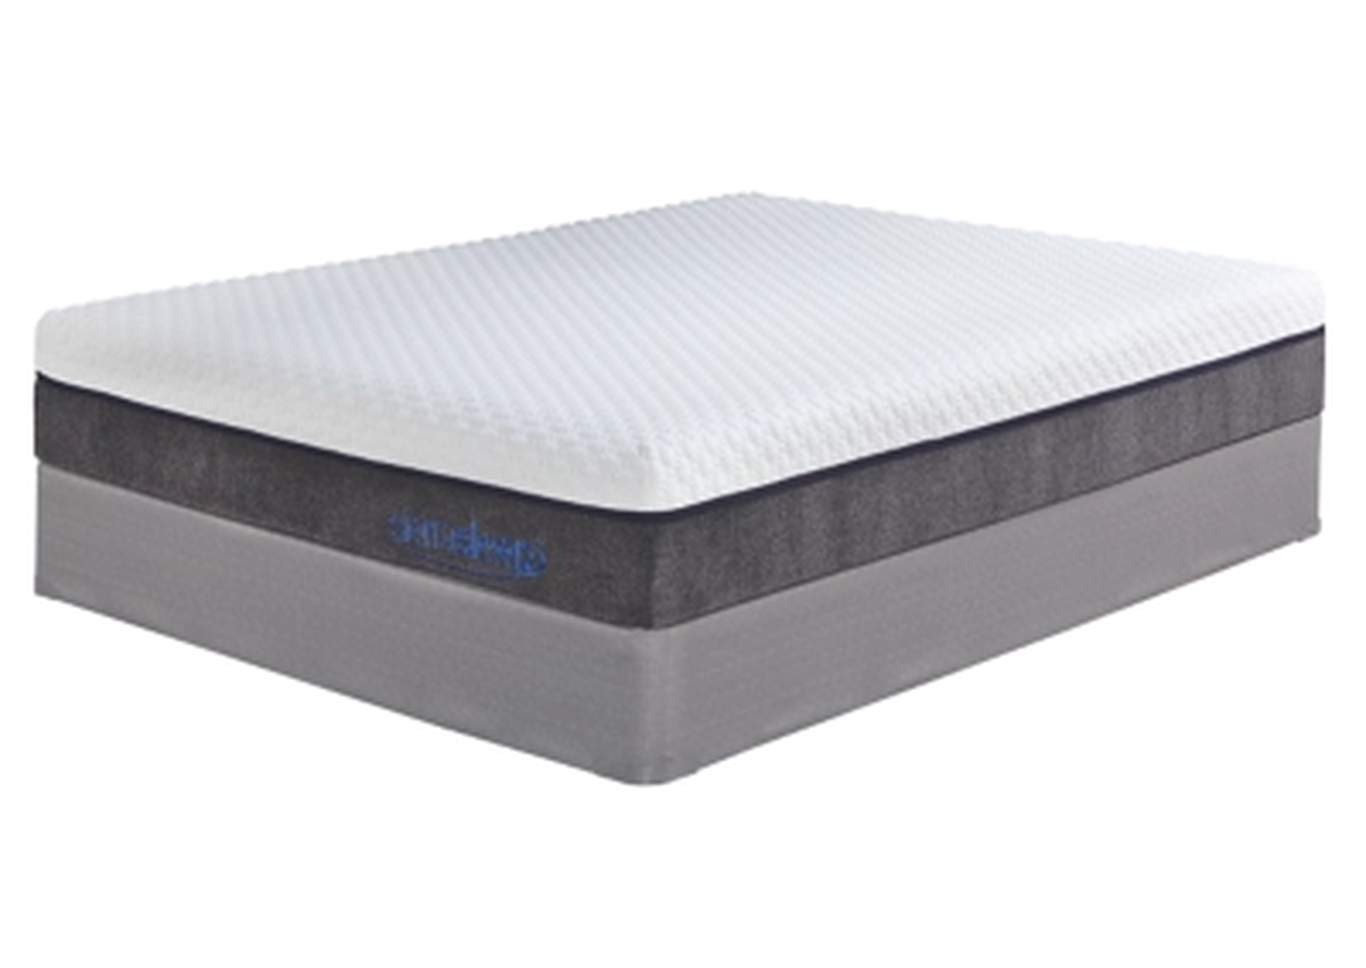 Mygel Hybrid 1100 Twin Mattress w/Foundation,Sierra Sleep